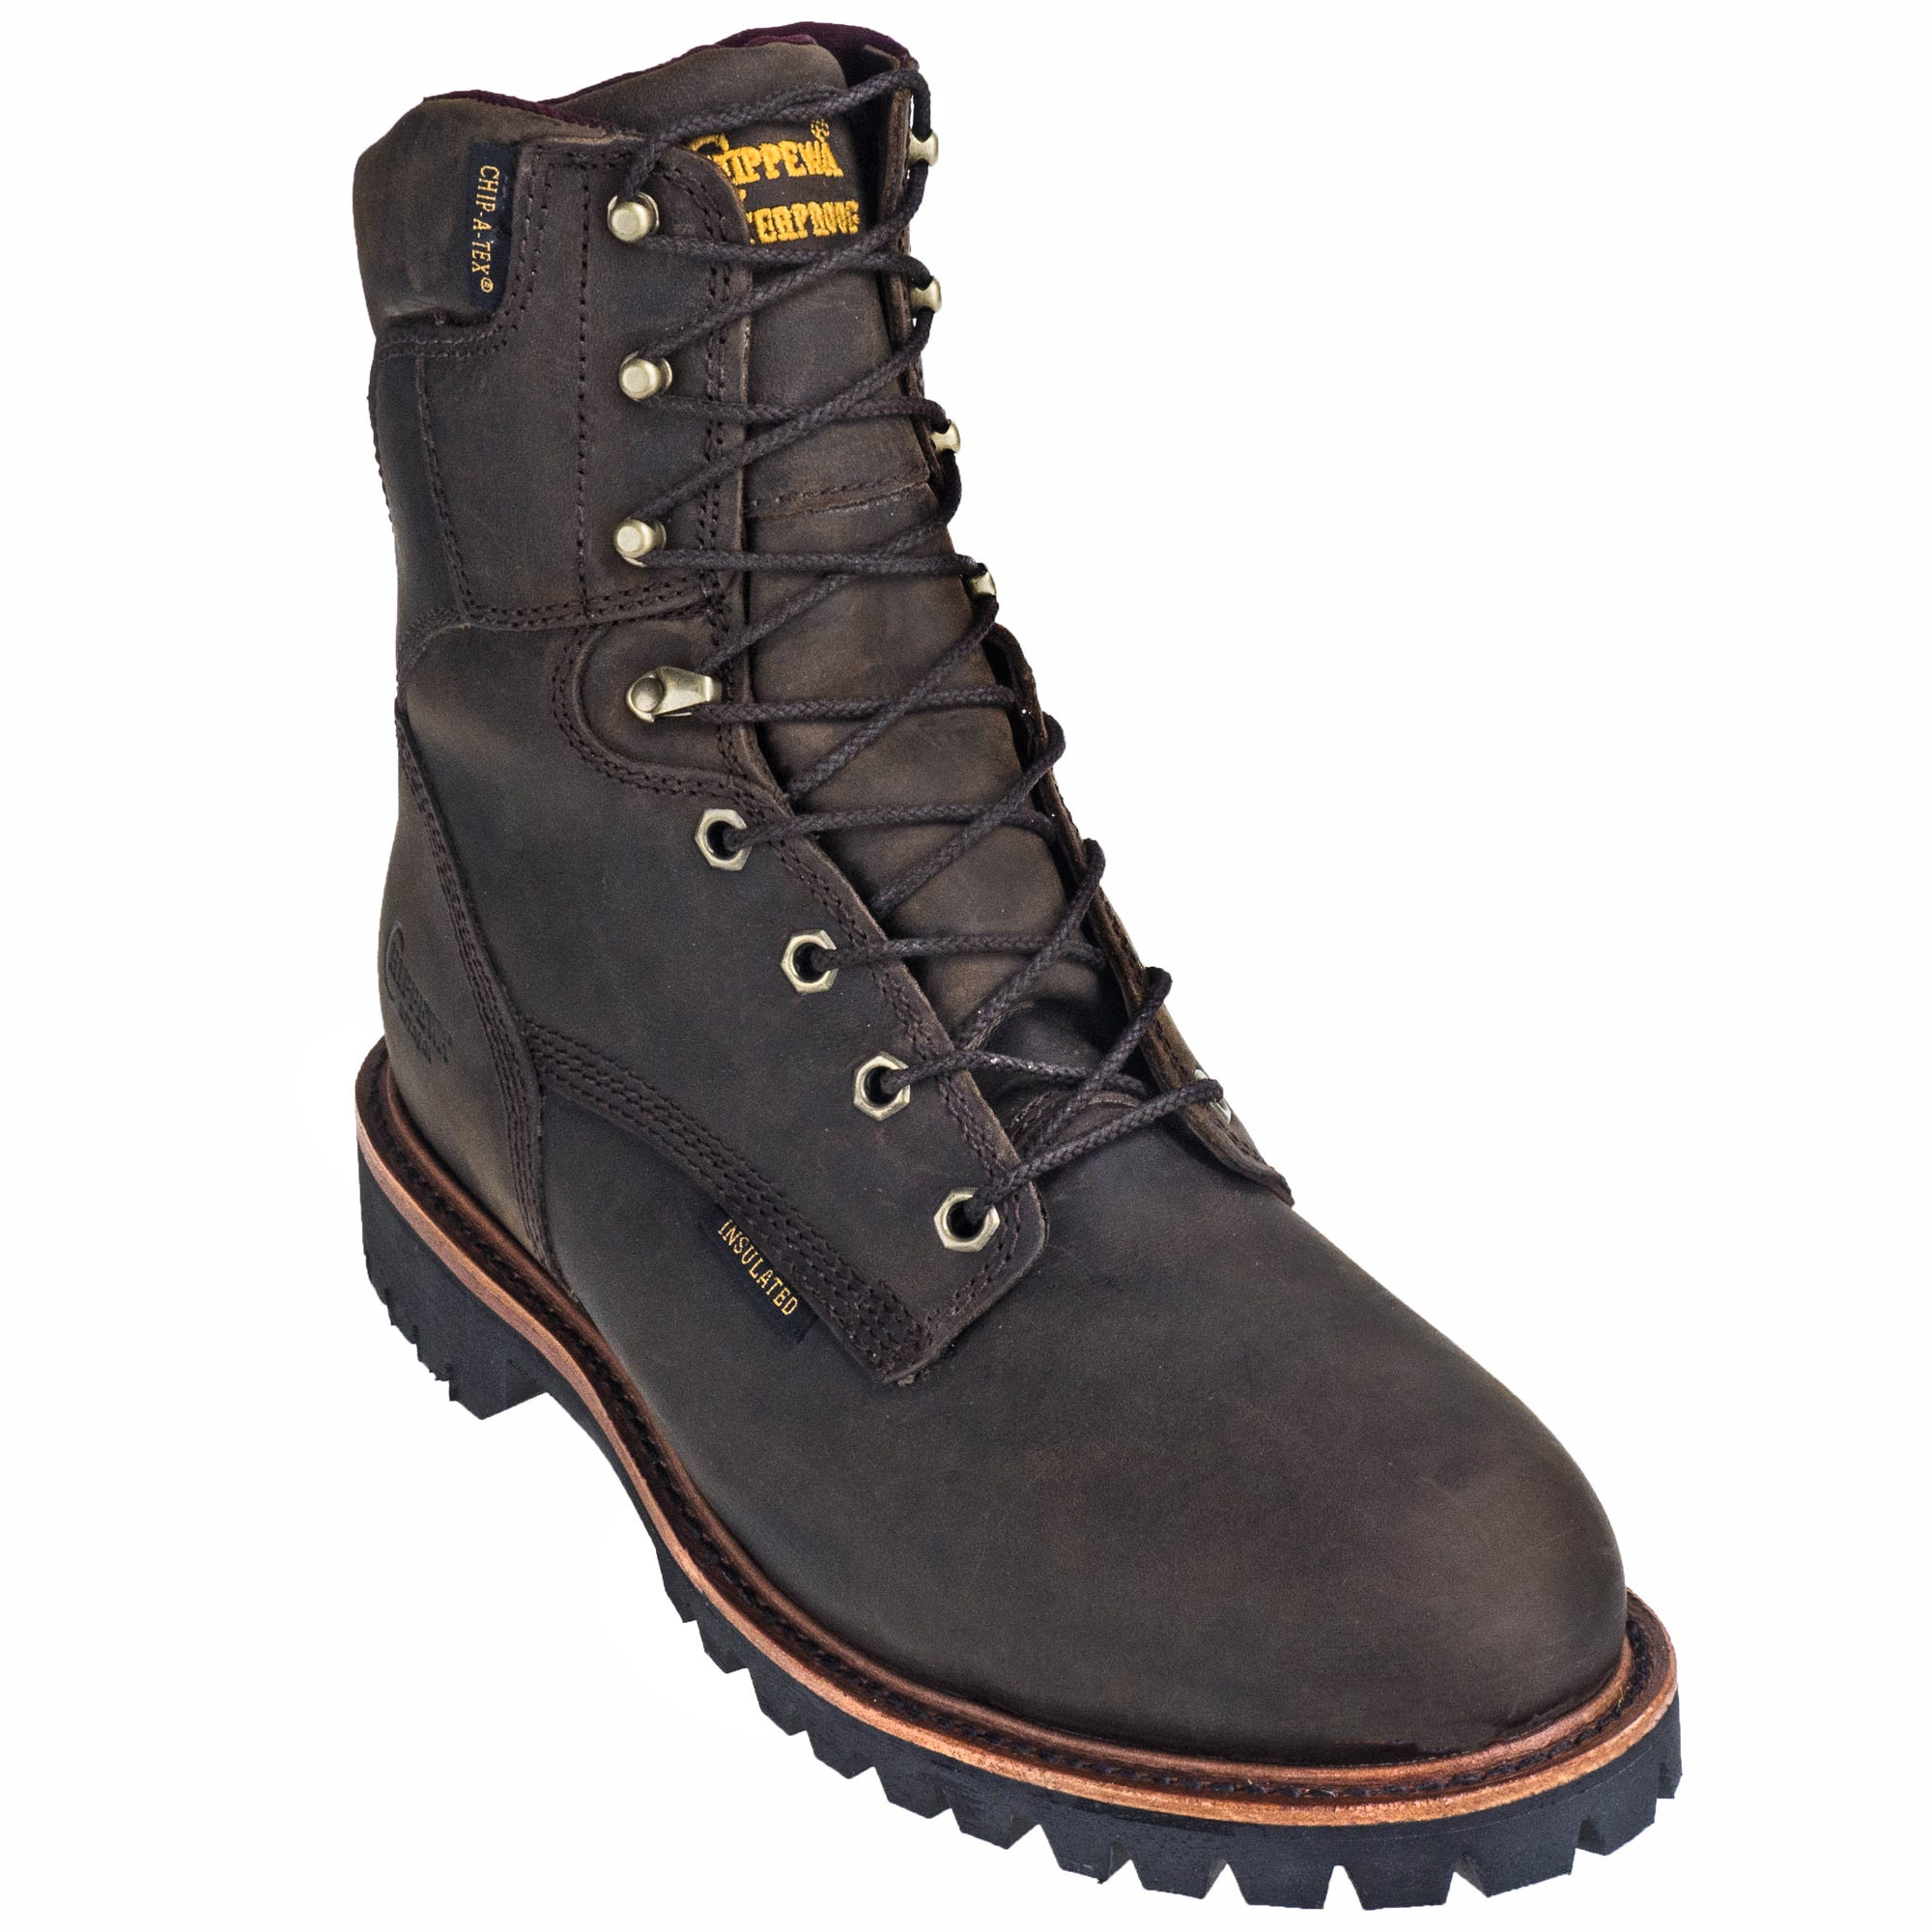 50845affc1b Chippewa Boots: Men's Steel Toe Waterproof 26330 EH USA-Made ...